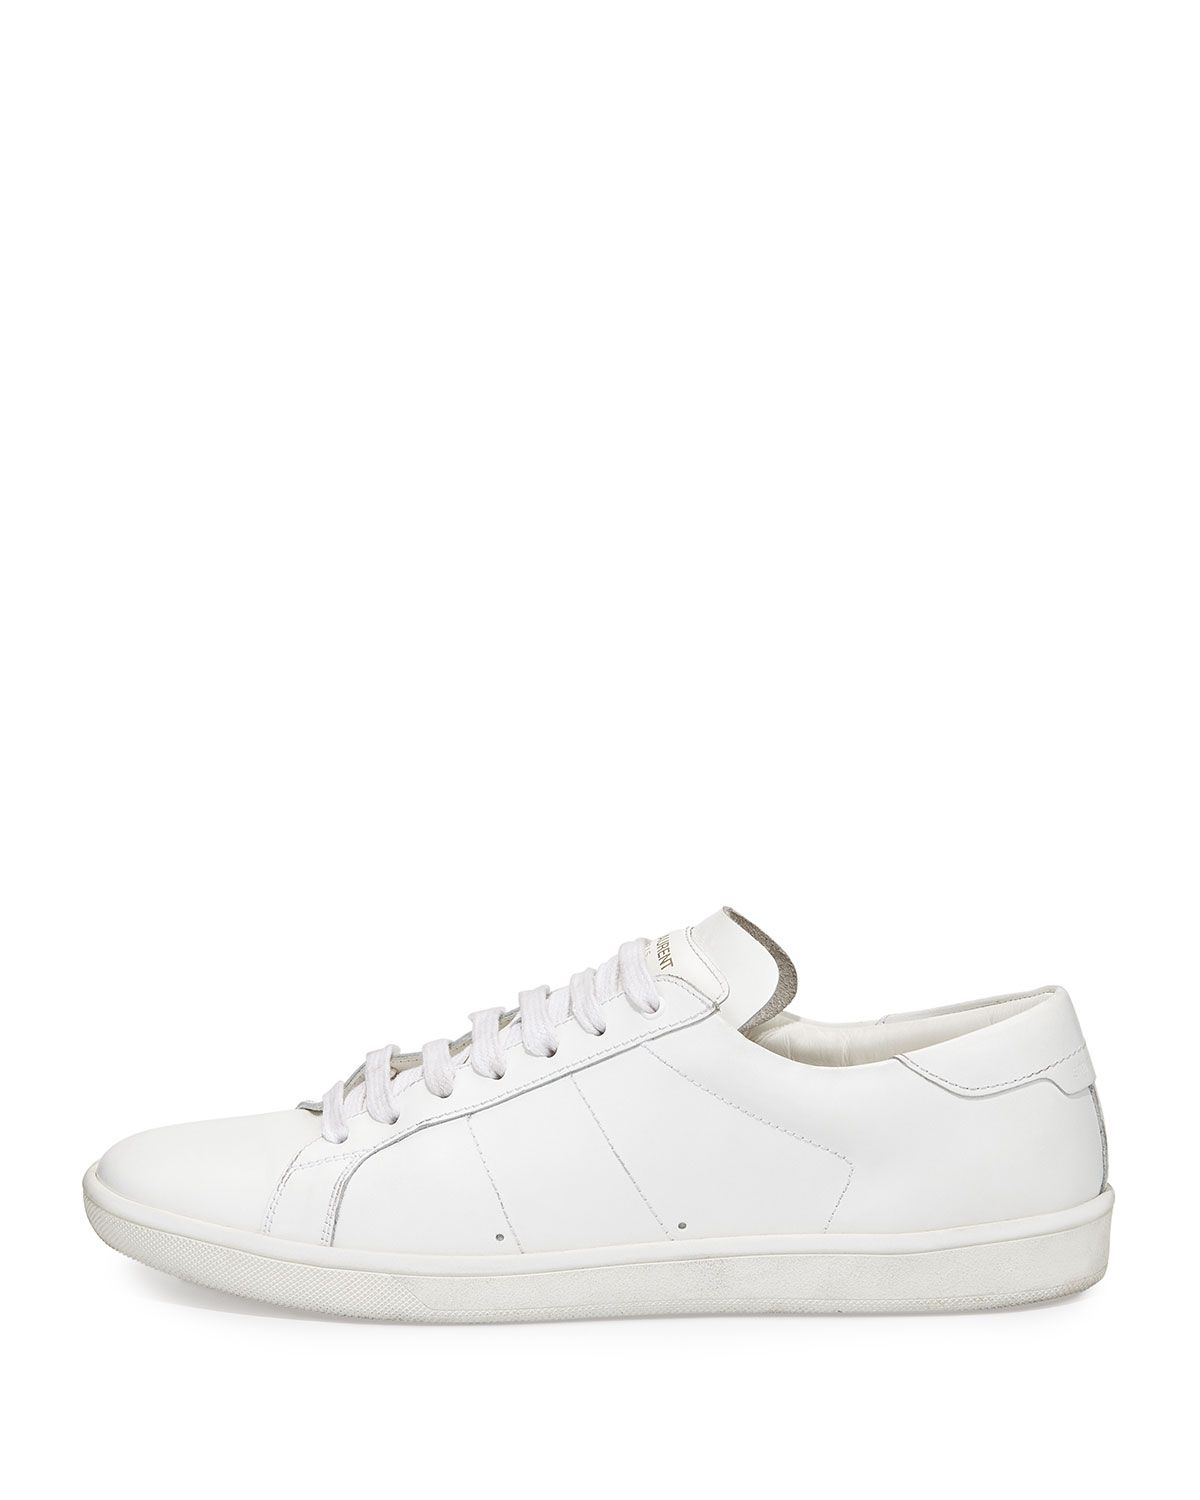 e0a8facacfc Saint Laurent low-top sneaker in calfskin leather. Round toe; lace-up front…